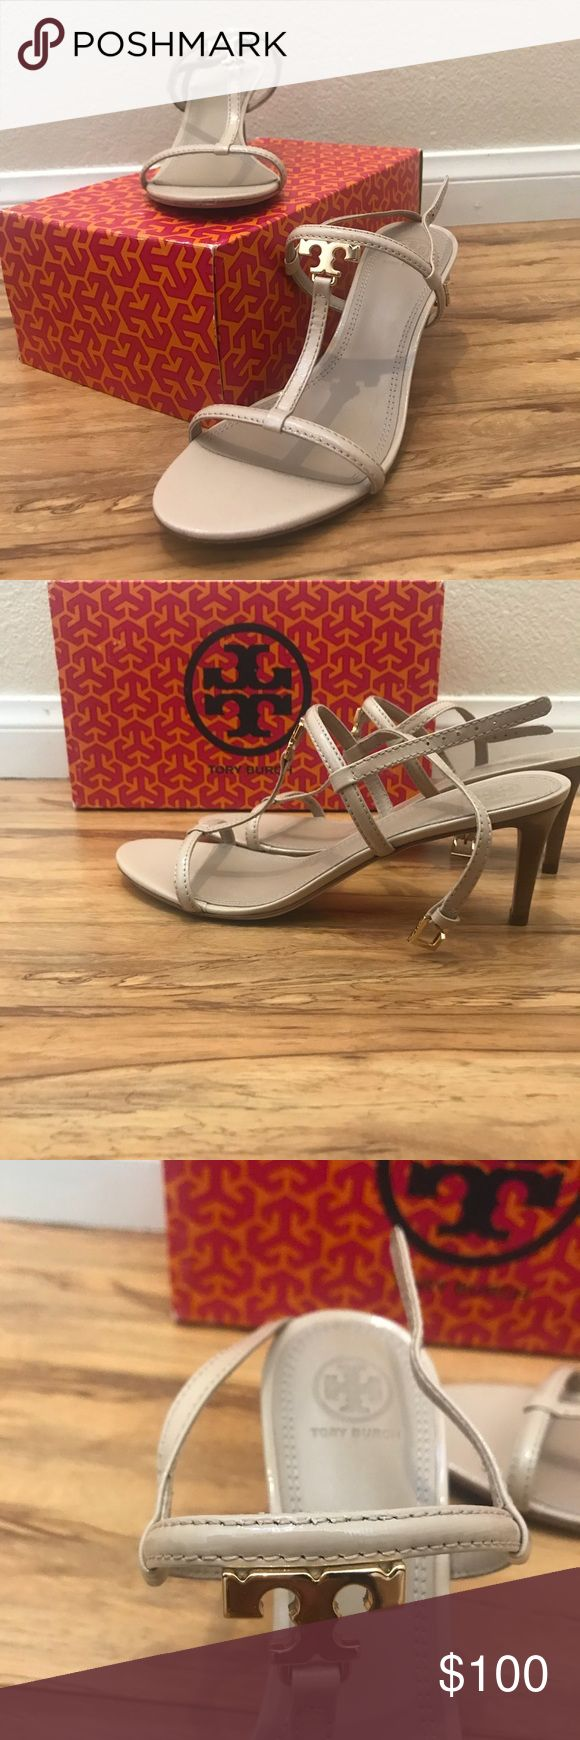 TORY BURCH Nude Heeled Sandal Nude TB kitten heel sandals. Worn once and in perfect condition. Tory Burch Shoes Sandals